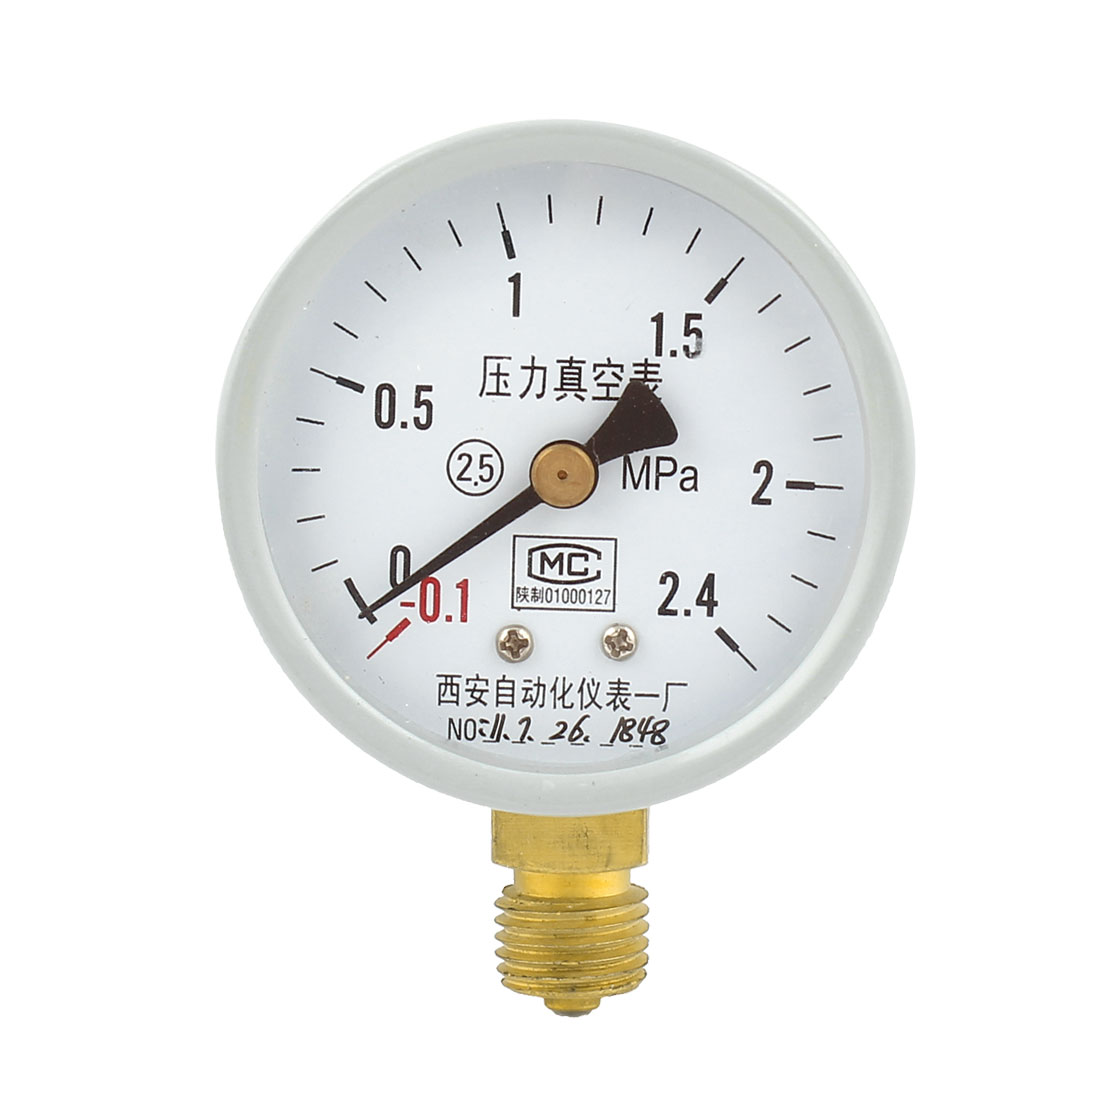 Round Dial Air Pneumatic Vacuum Pressure Meter Gauge -0.1MPa to 2.4MPa 60mm